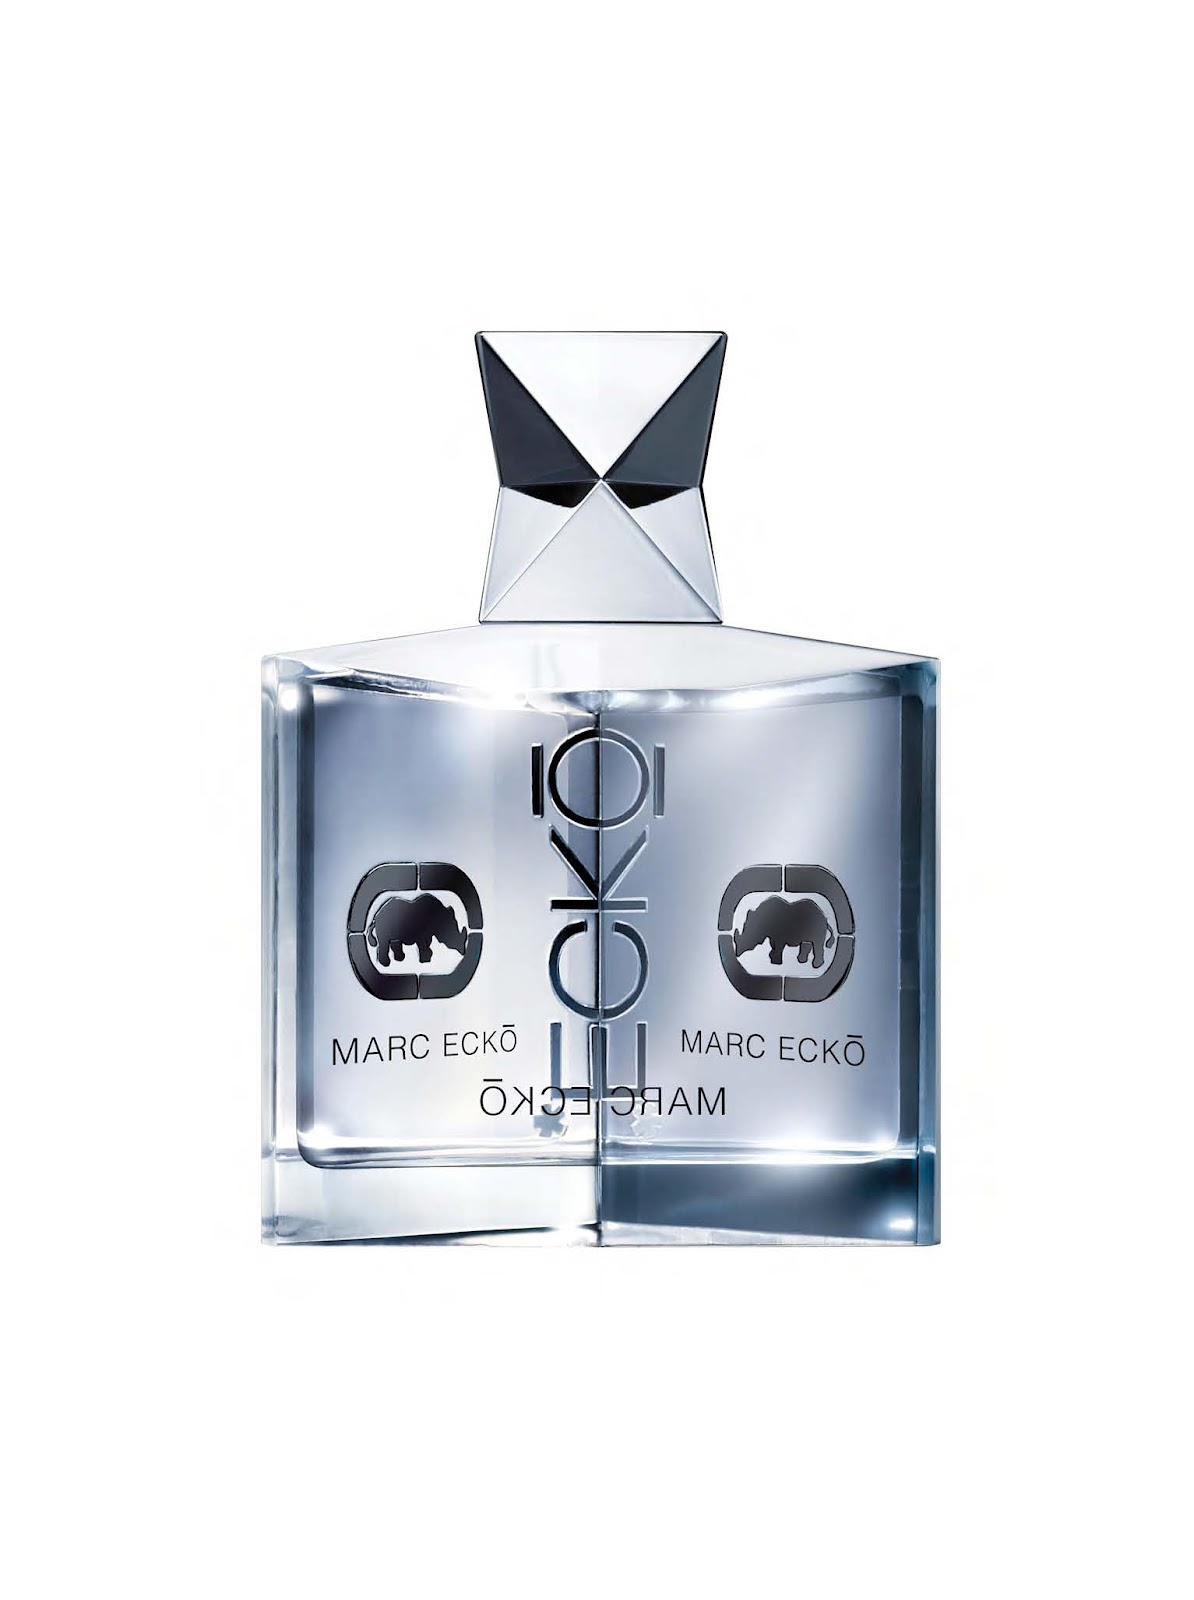 Ecko by Marc Ecko Fragrance for Men.jpeg